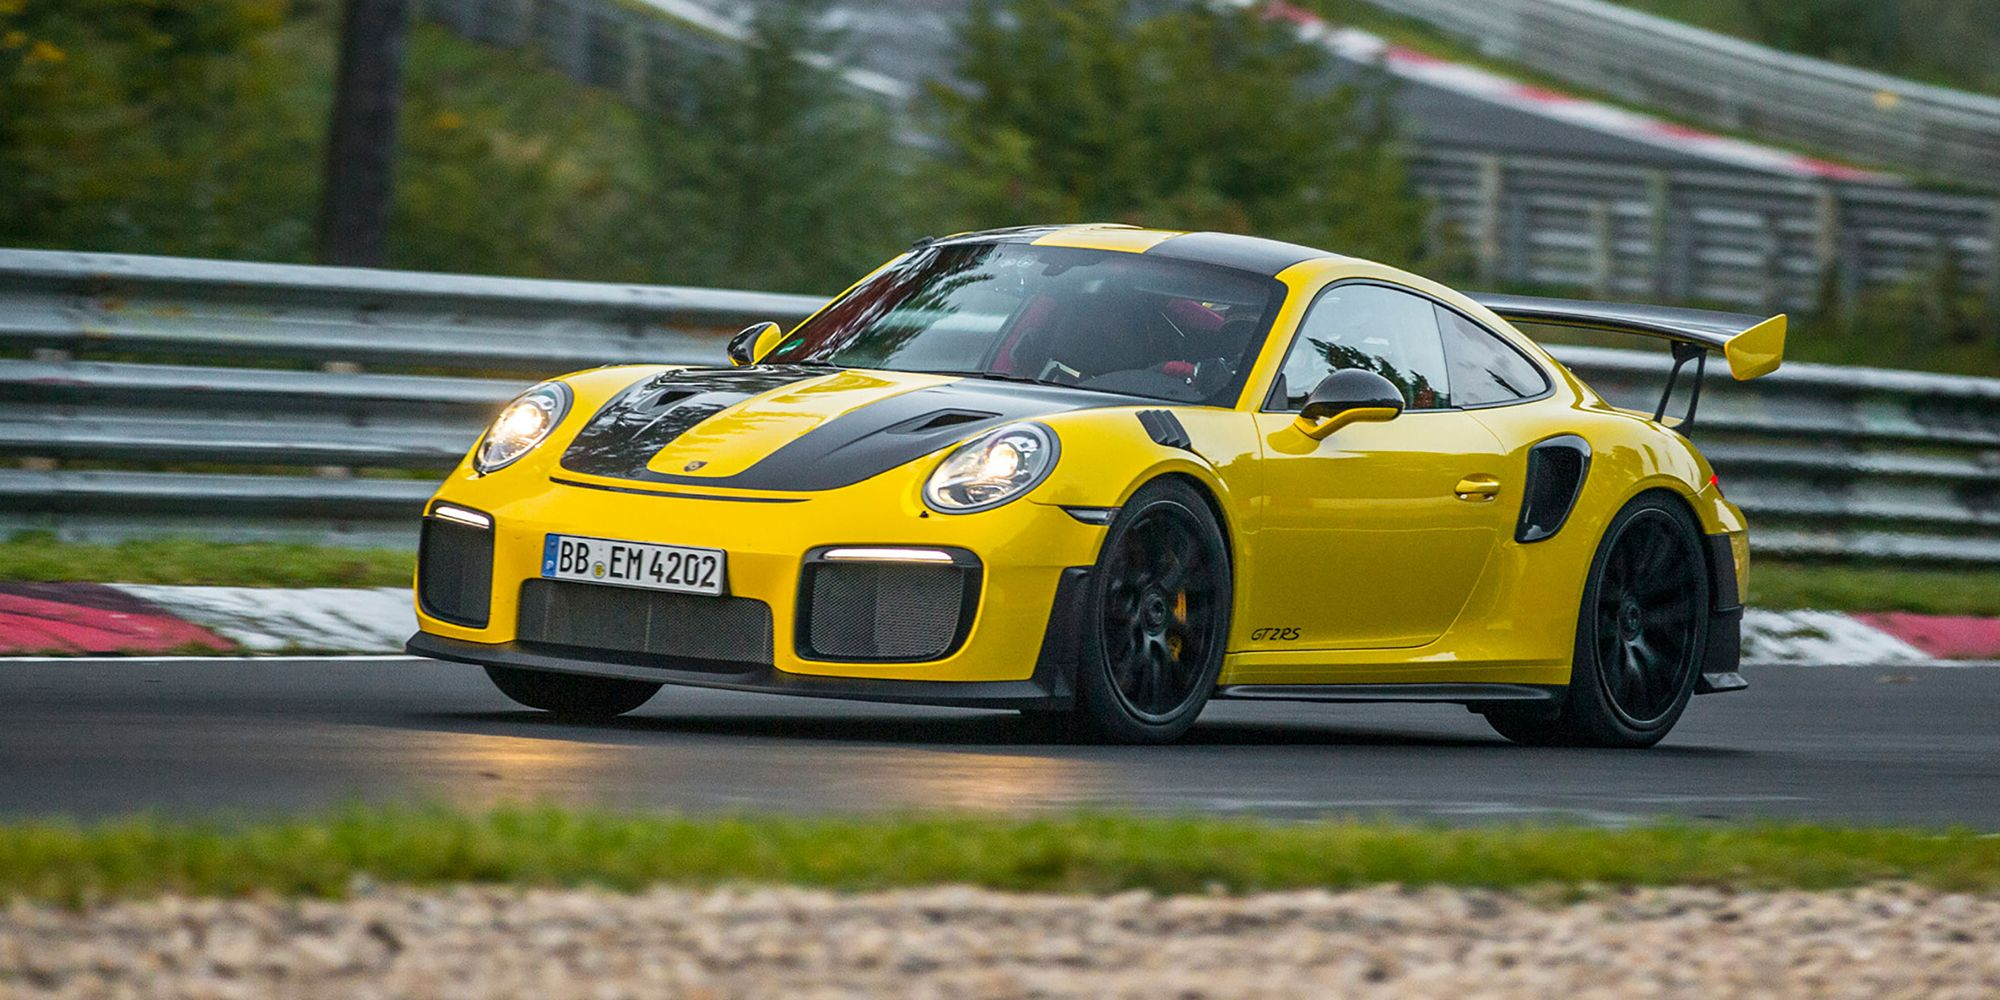 How the Porsche 911 GT2 RS Is So Fast at the Nurburgring